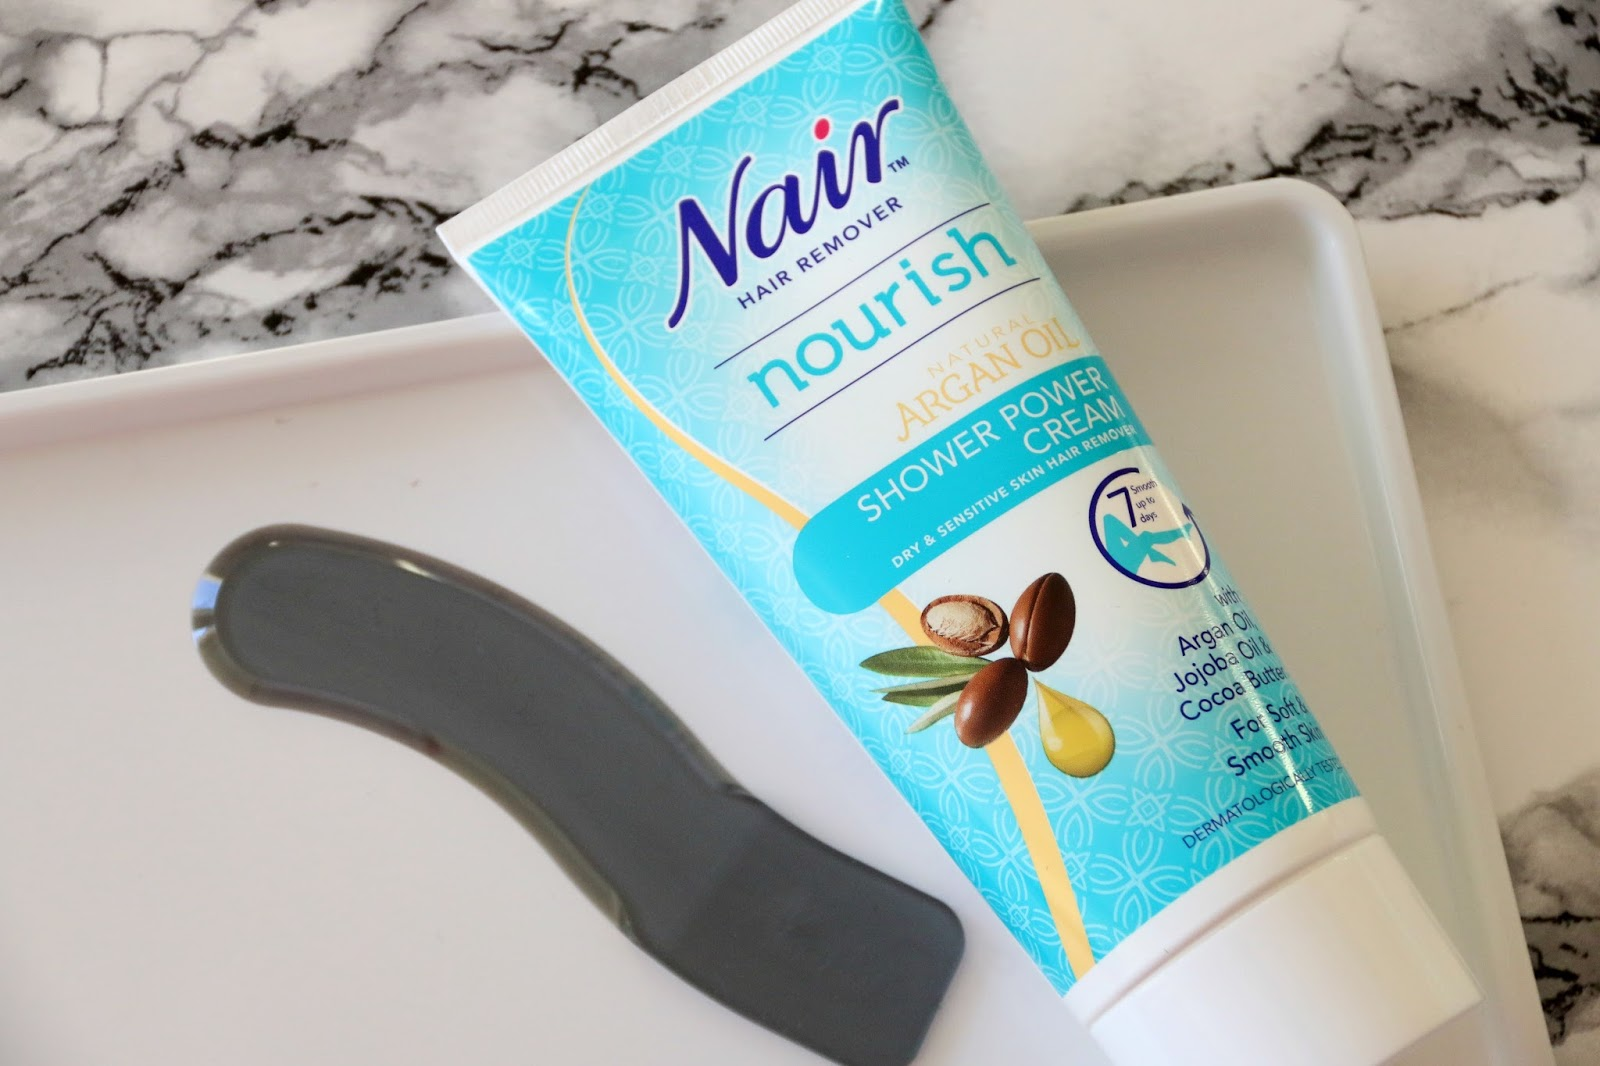 Nair Hair Removal Cream Review